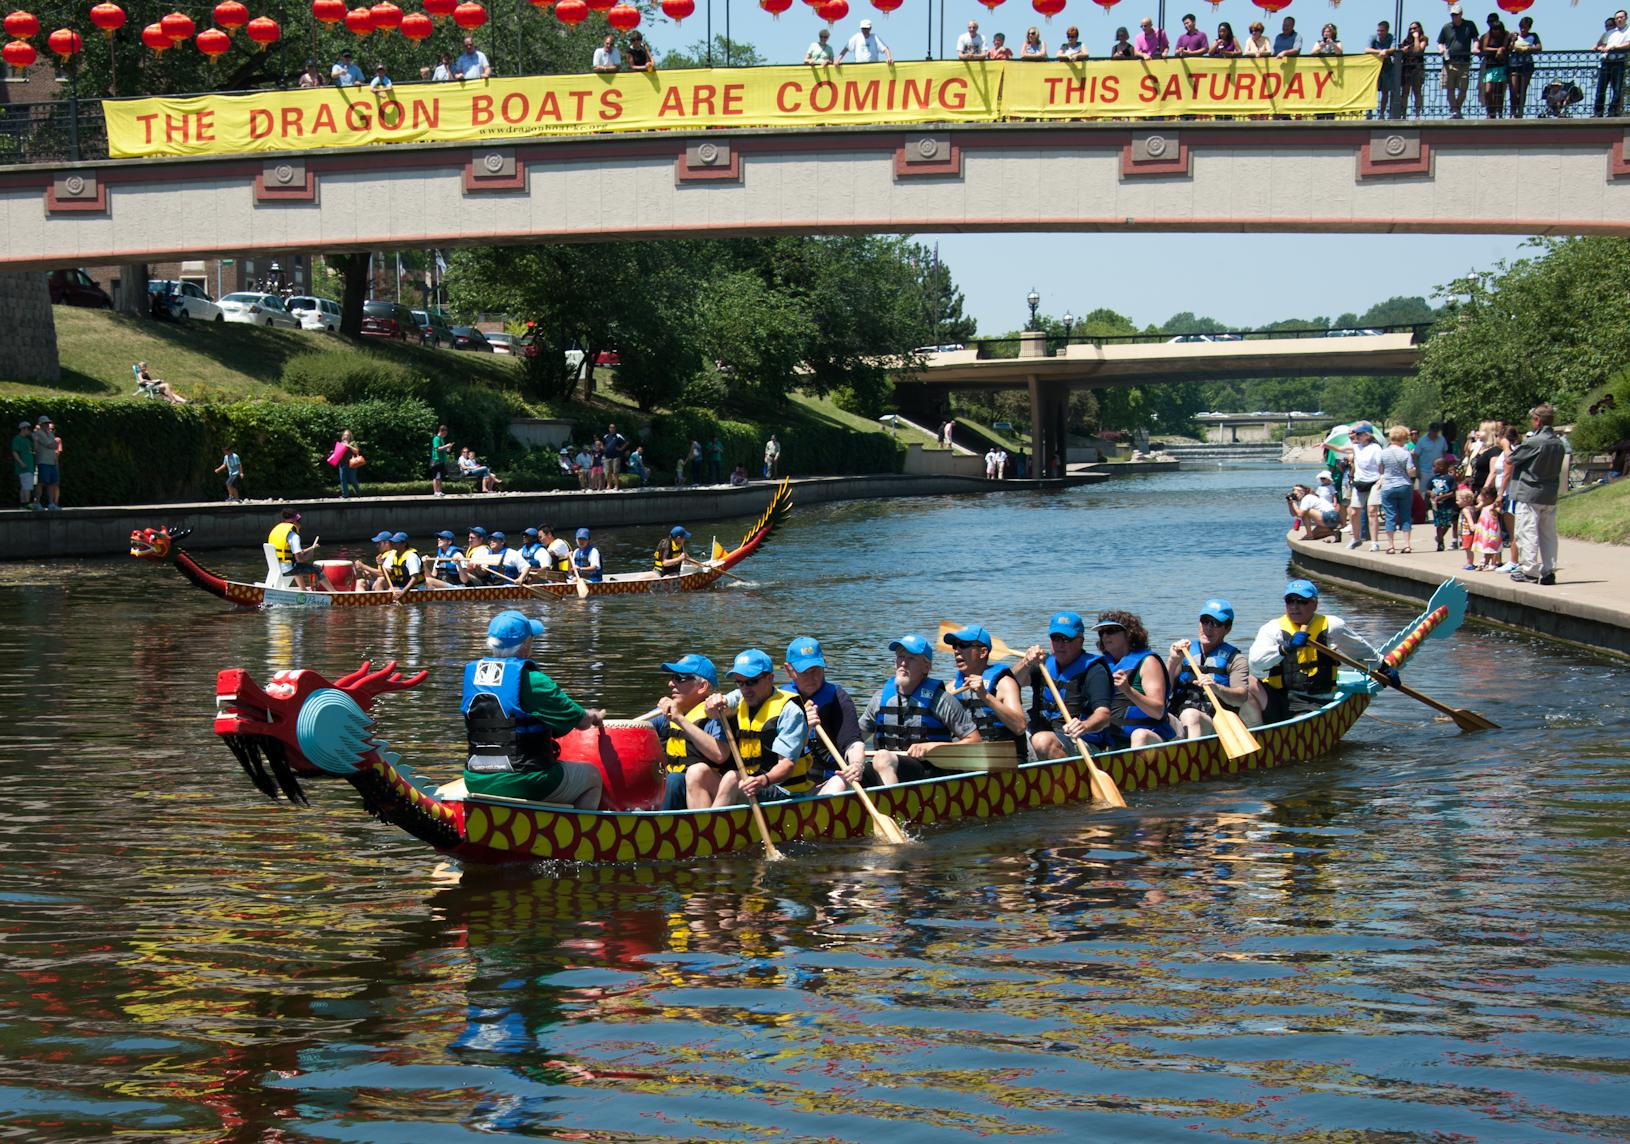 Dragon Boat Races this Saturday!